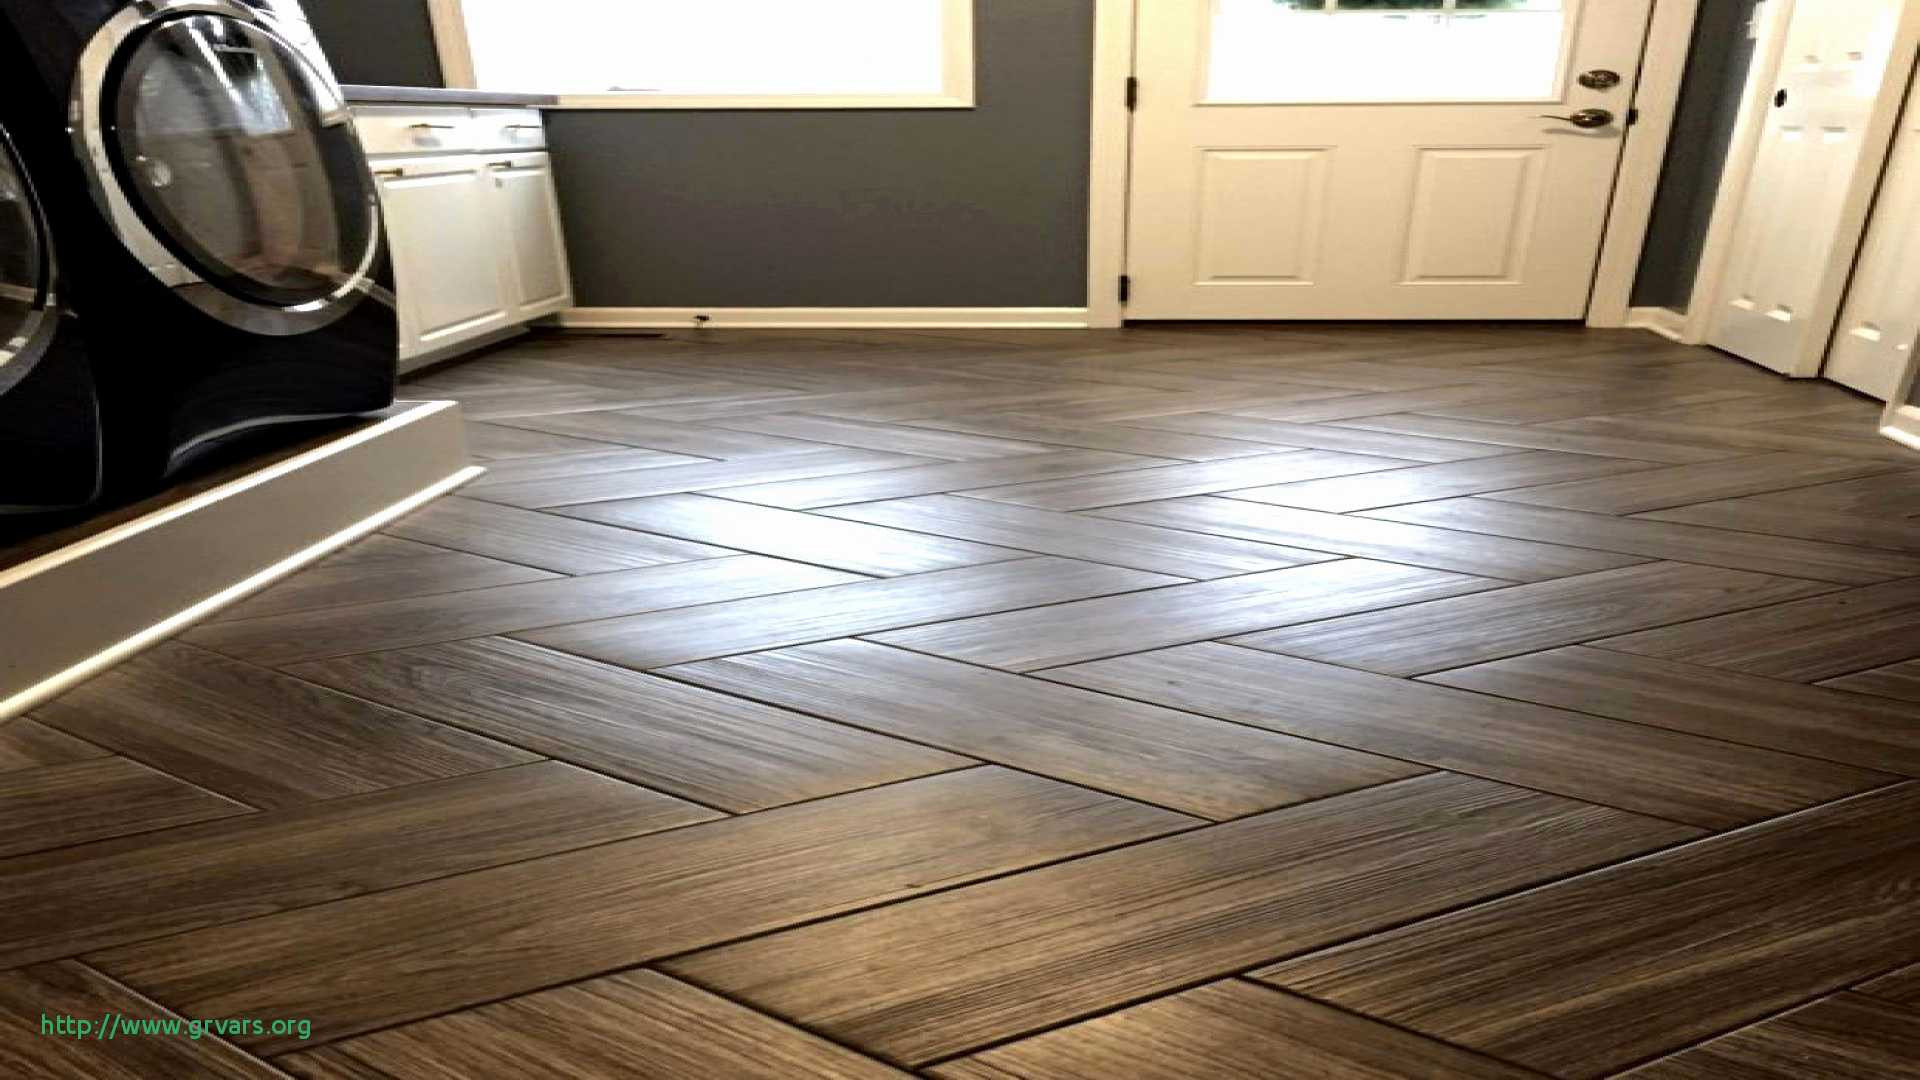 glue down hardwood floor repair of 16 beau repair loose floor tile without removing ideas blog with regard to kitchen floor tiles home depot elegant s media cache ak0 pinimg 736x 43 0d 97 best